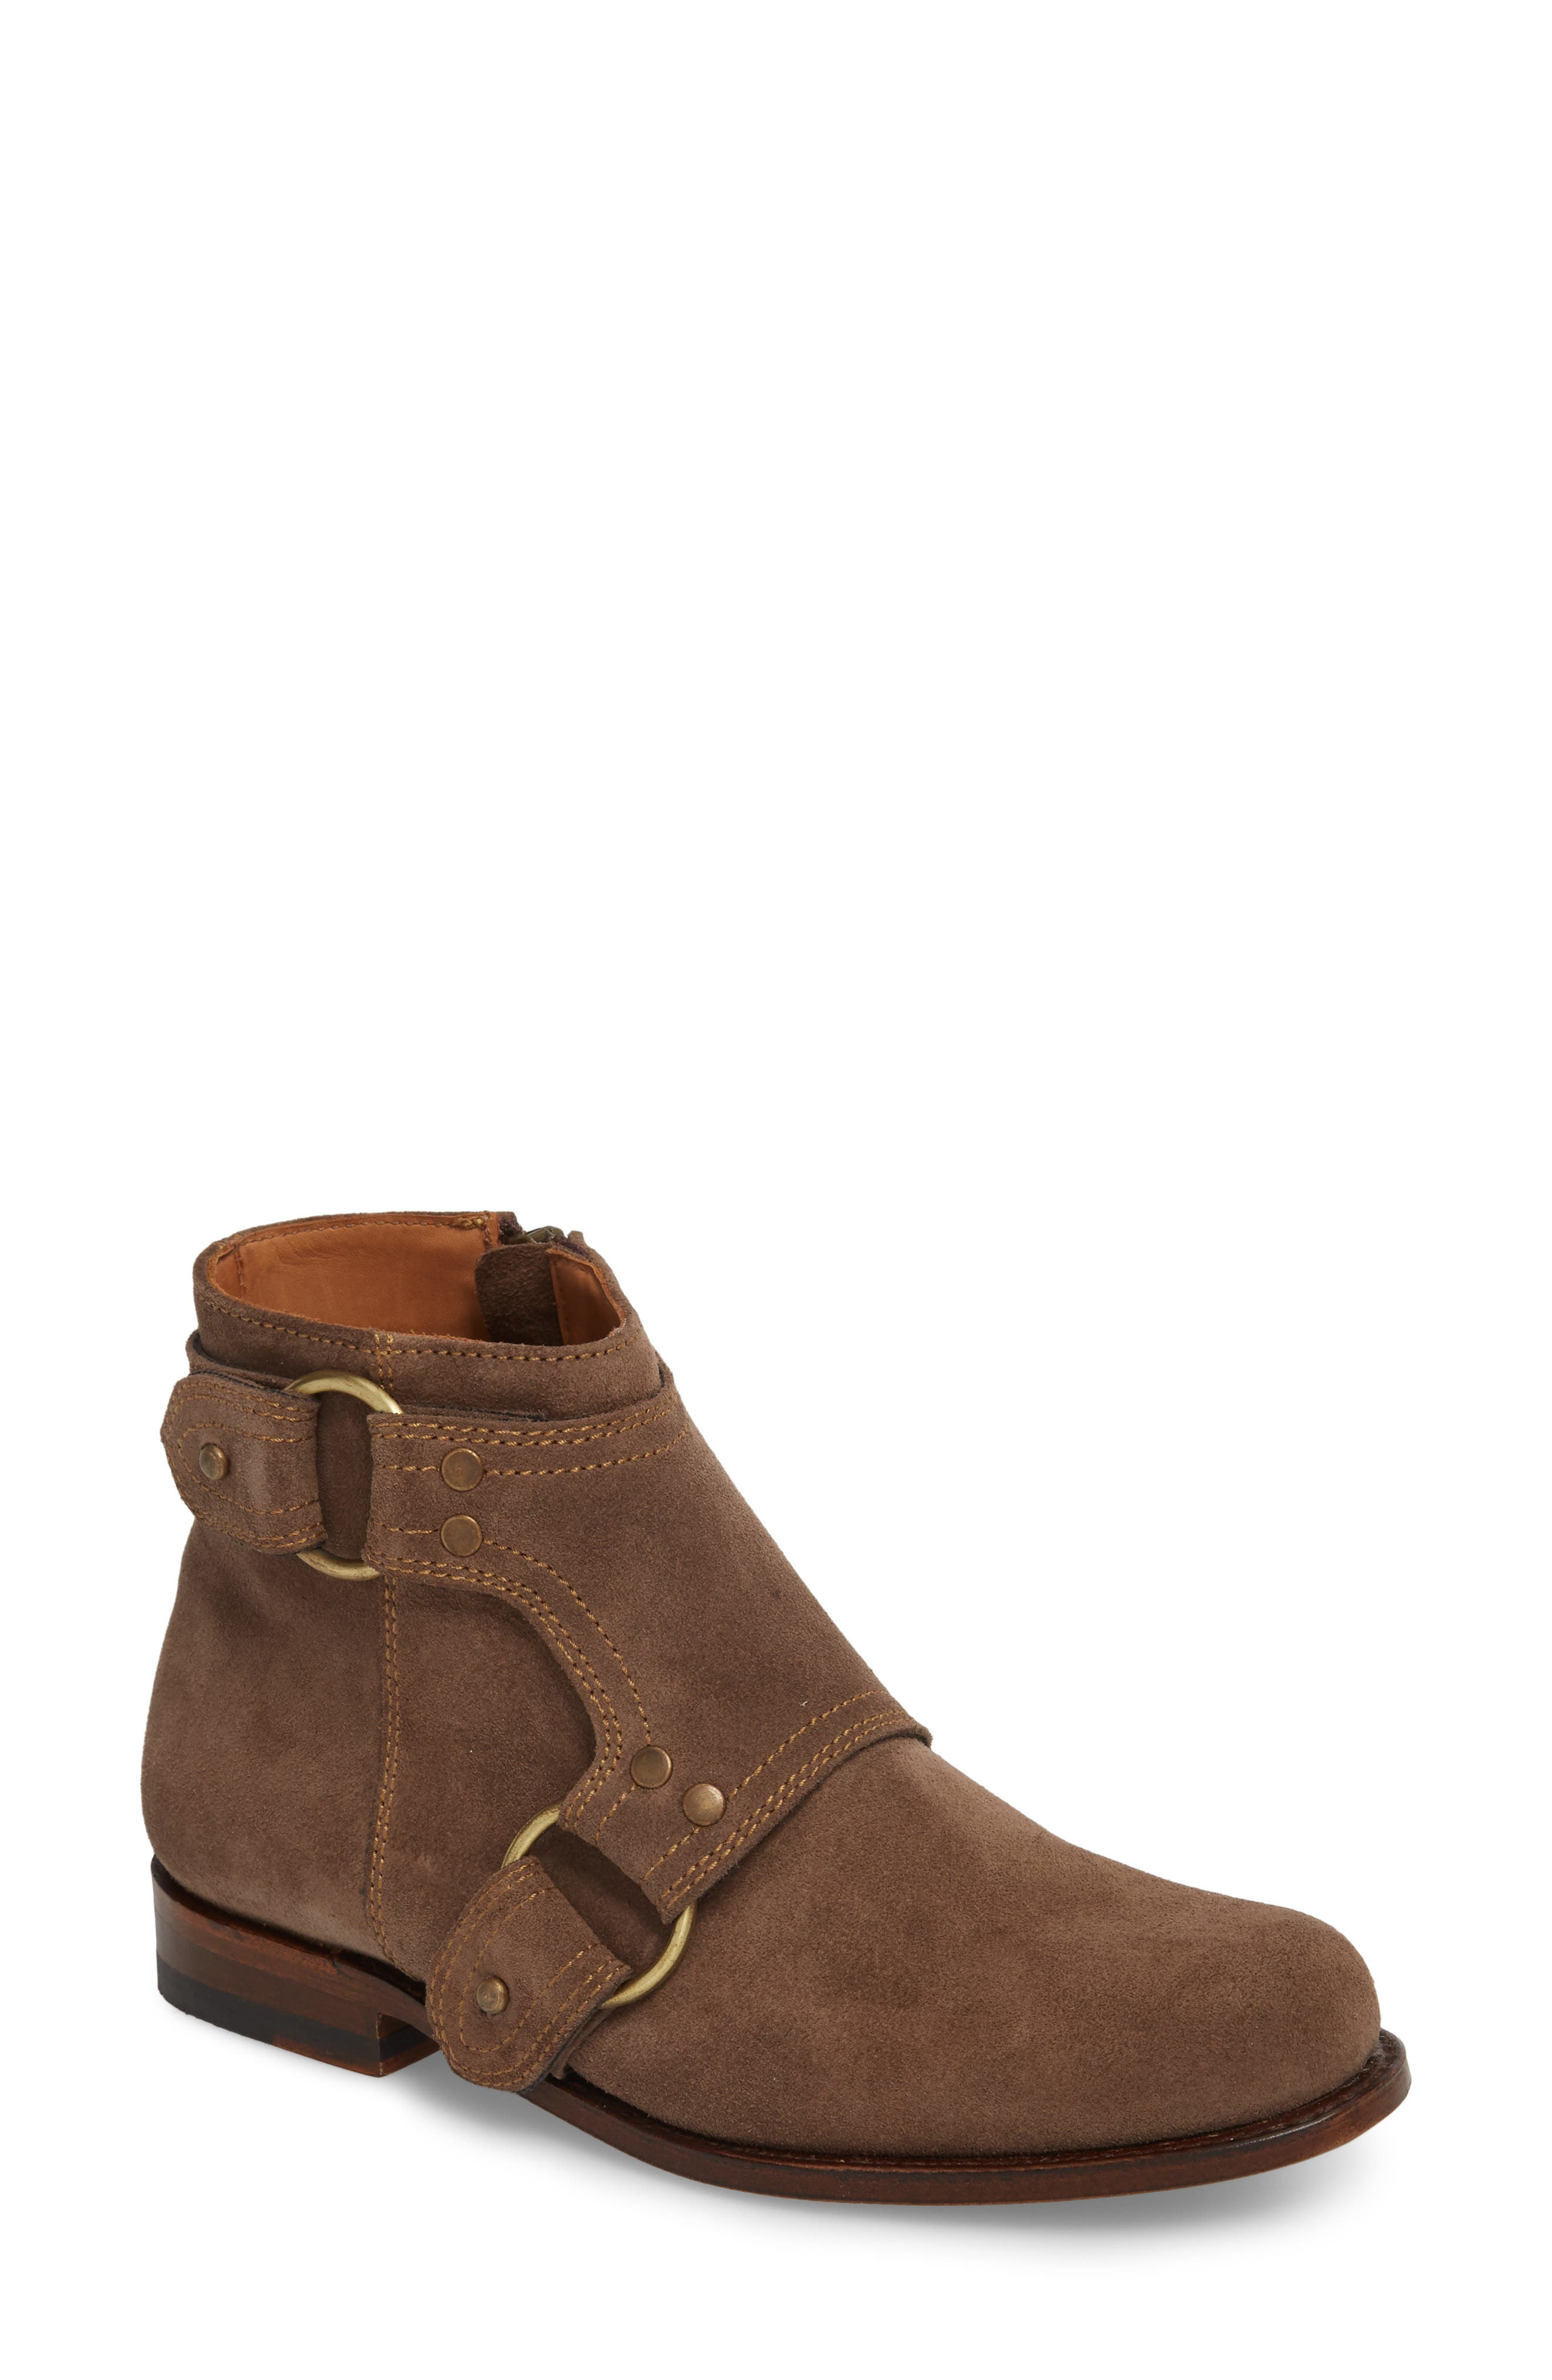 Two24 by Ariat Paloma Bootie,                         Main,                         color,